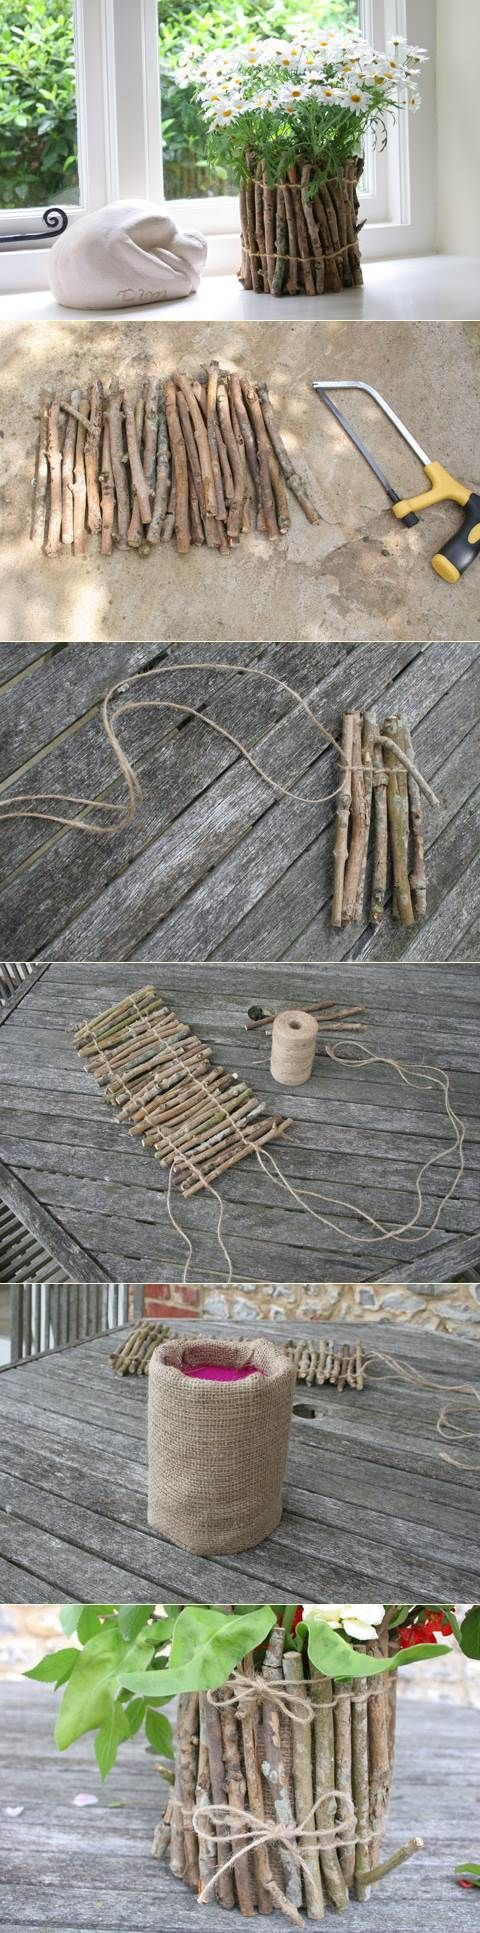 Make a small playing fort this way. Cool for hollidays, maybe on a rainy day